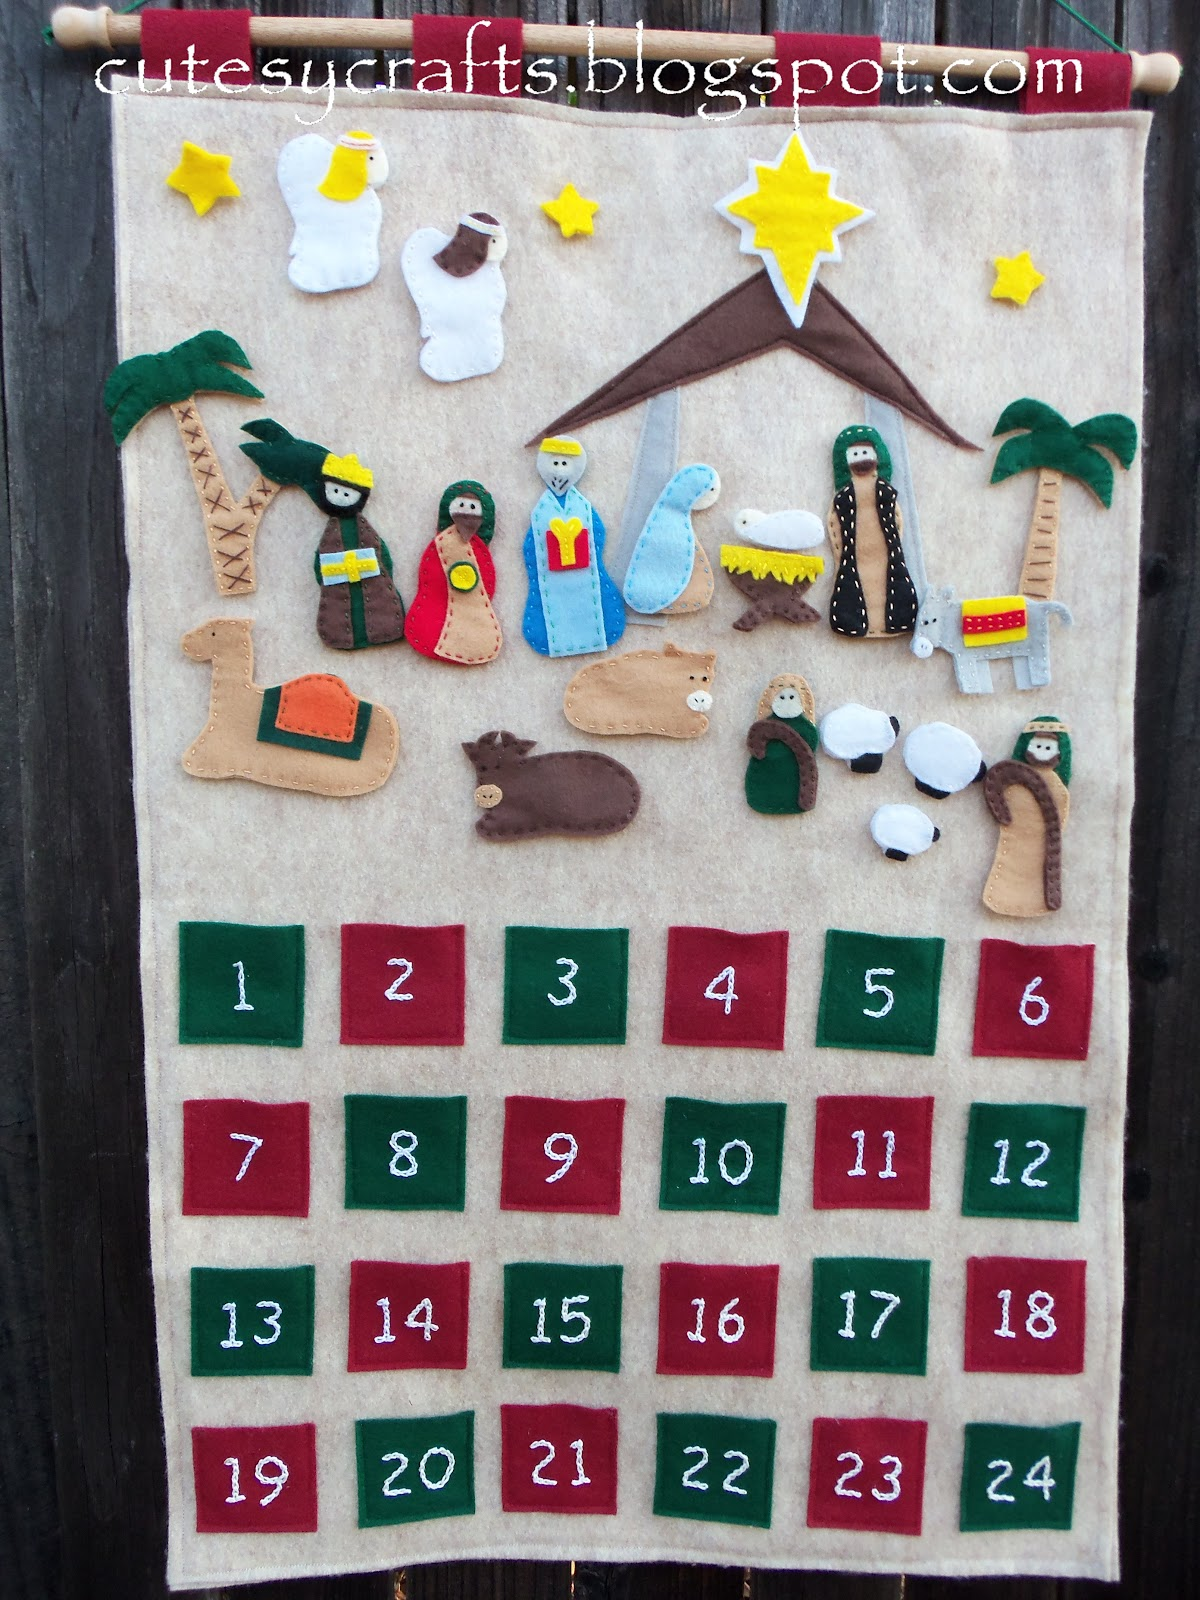 24117311052c5 Nativity Advent Calendar - Christmas Countdown Calendar